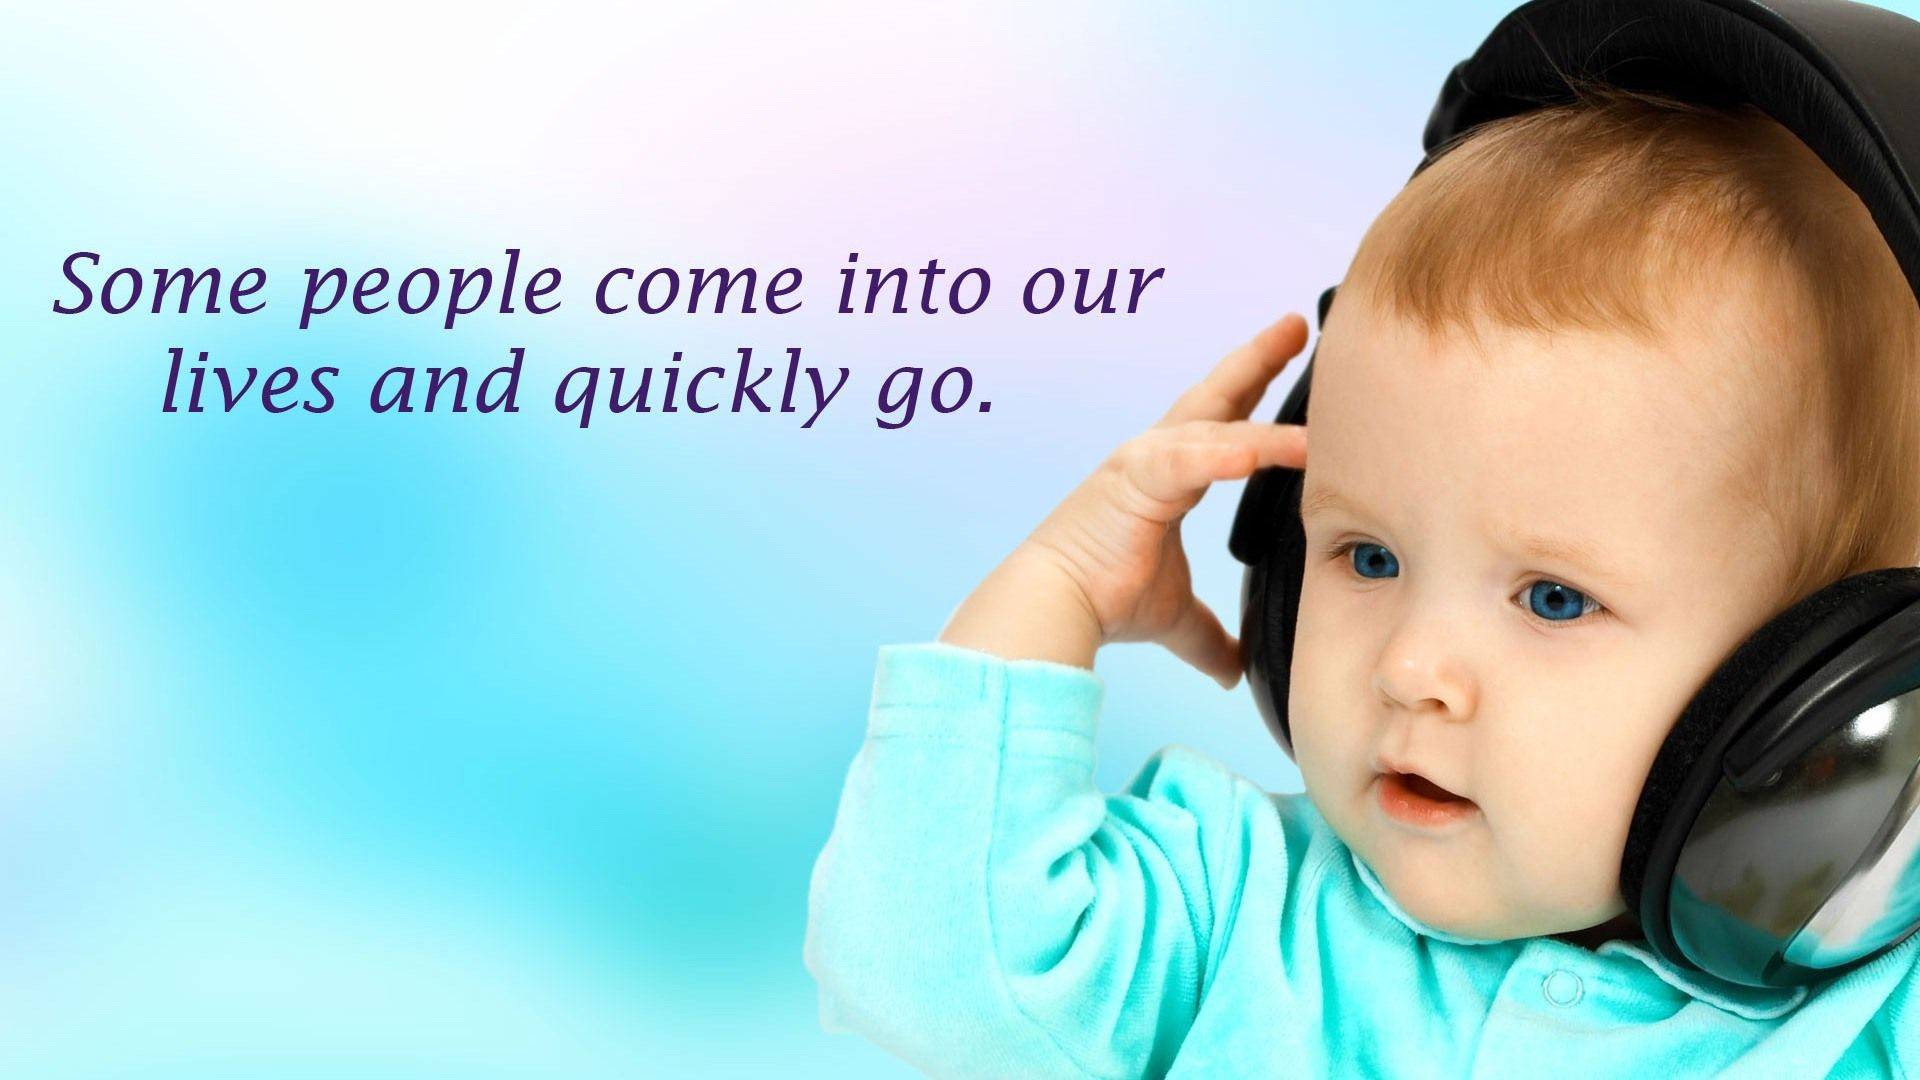 Friendship Quotes Hd Images Cute Baby Wallpaper Baby Wallpaper Baby Wallpaper Hd